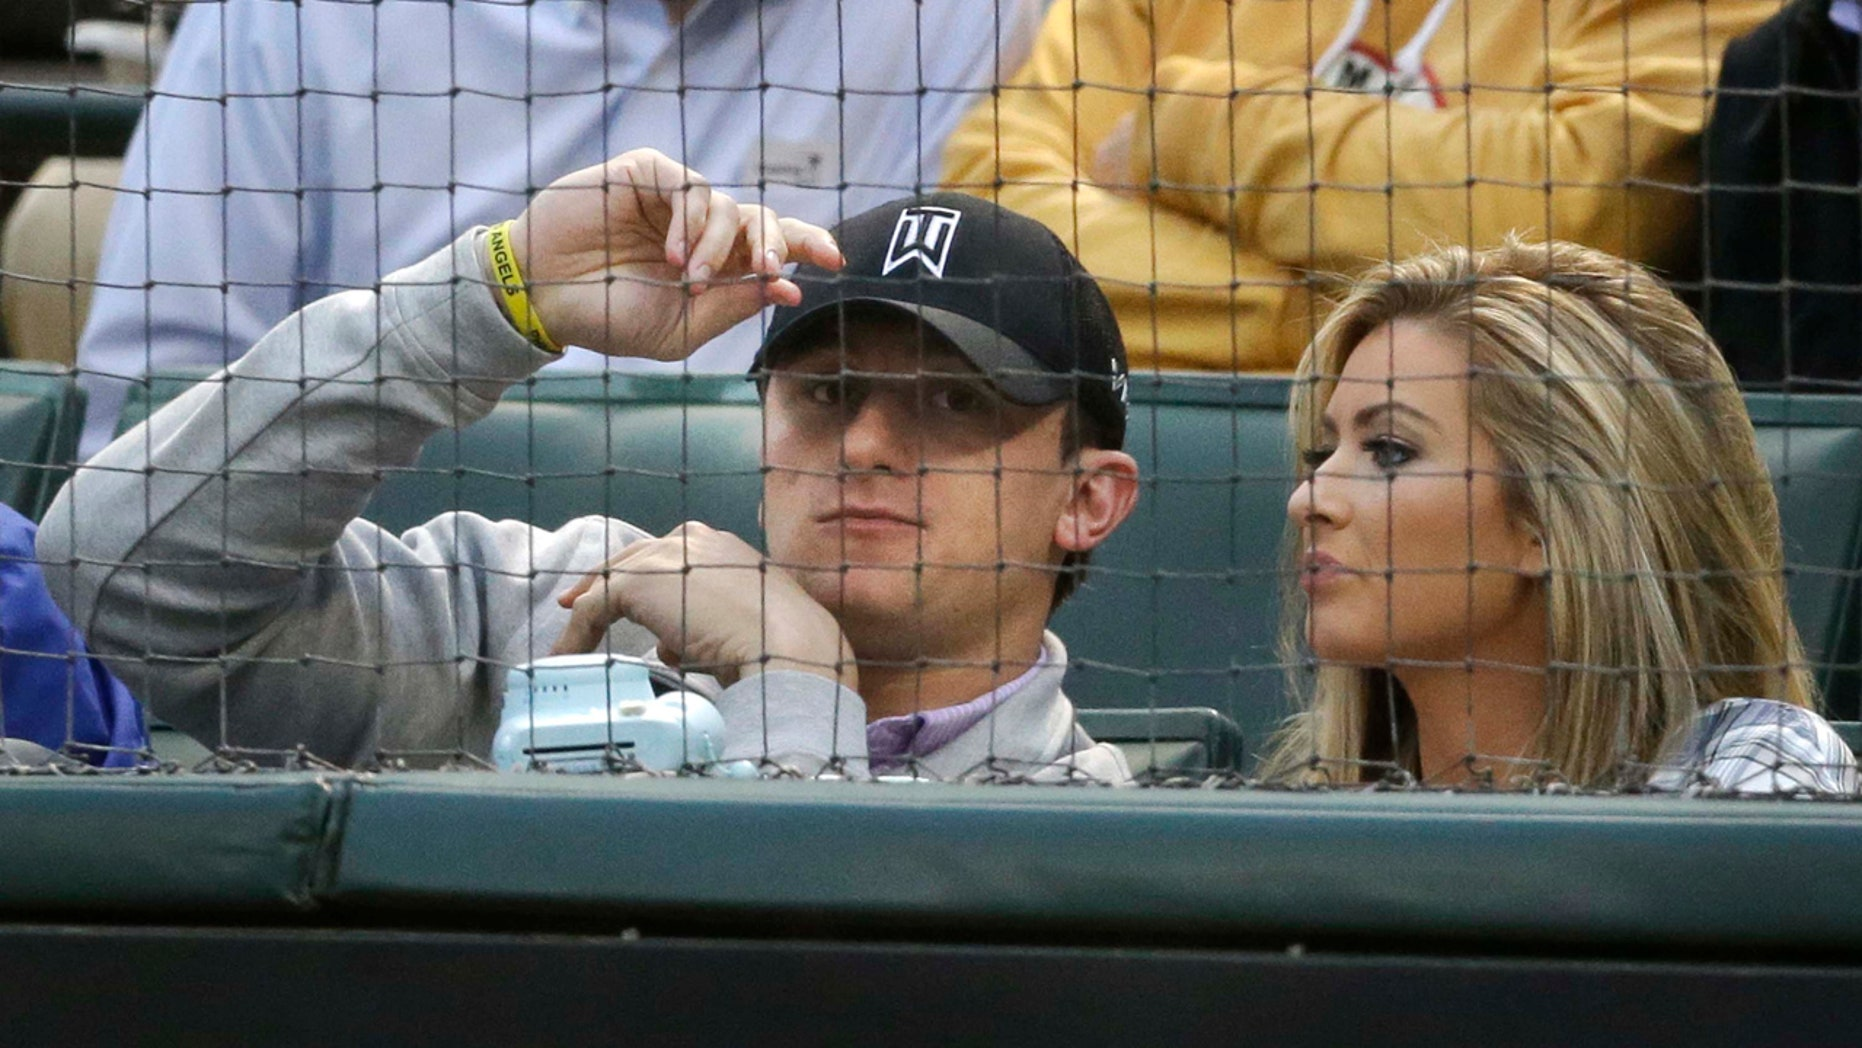 April 14, 2015: Johnny Manziel, left, sits with Colleen Crowley during a baseball game between the Los Angeles Angels and the Texas Rangers in Arlington, Texas. Dallas police announced Friday they were launching a criminal investigation into a domestic violence assault complaint filed against Manziel, who was involved in an altercation last weekend during which he allegedly struck Crowley several times. (AP Photo/LM Otero)